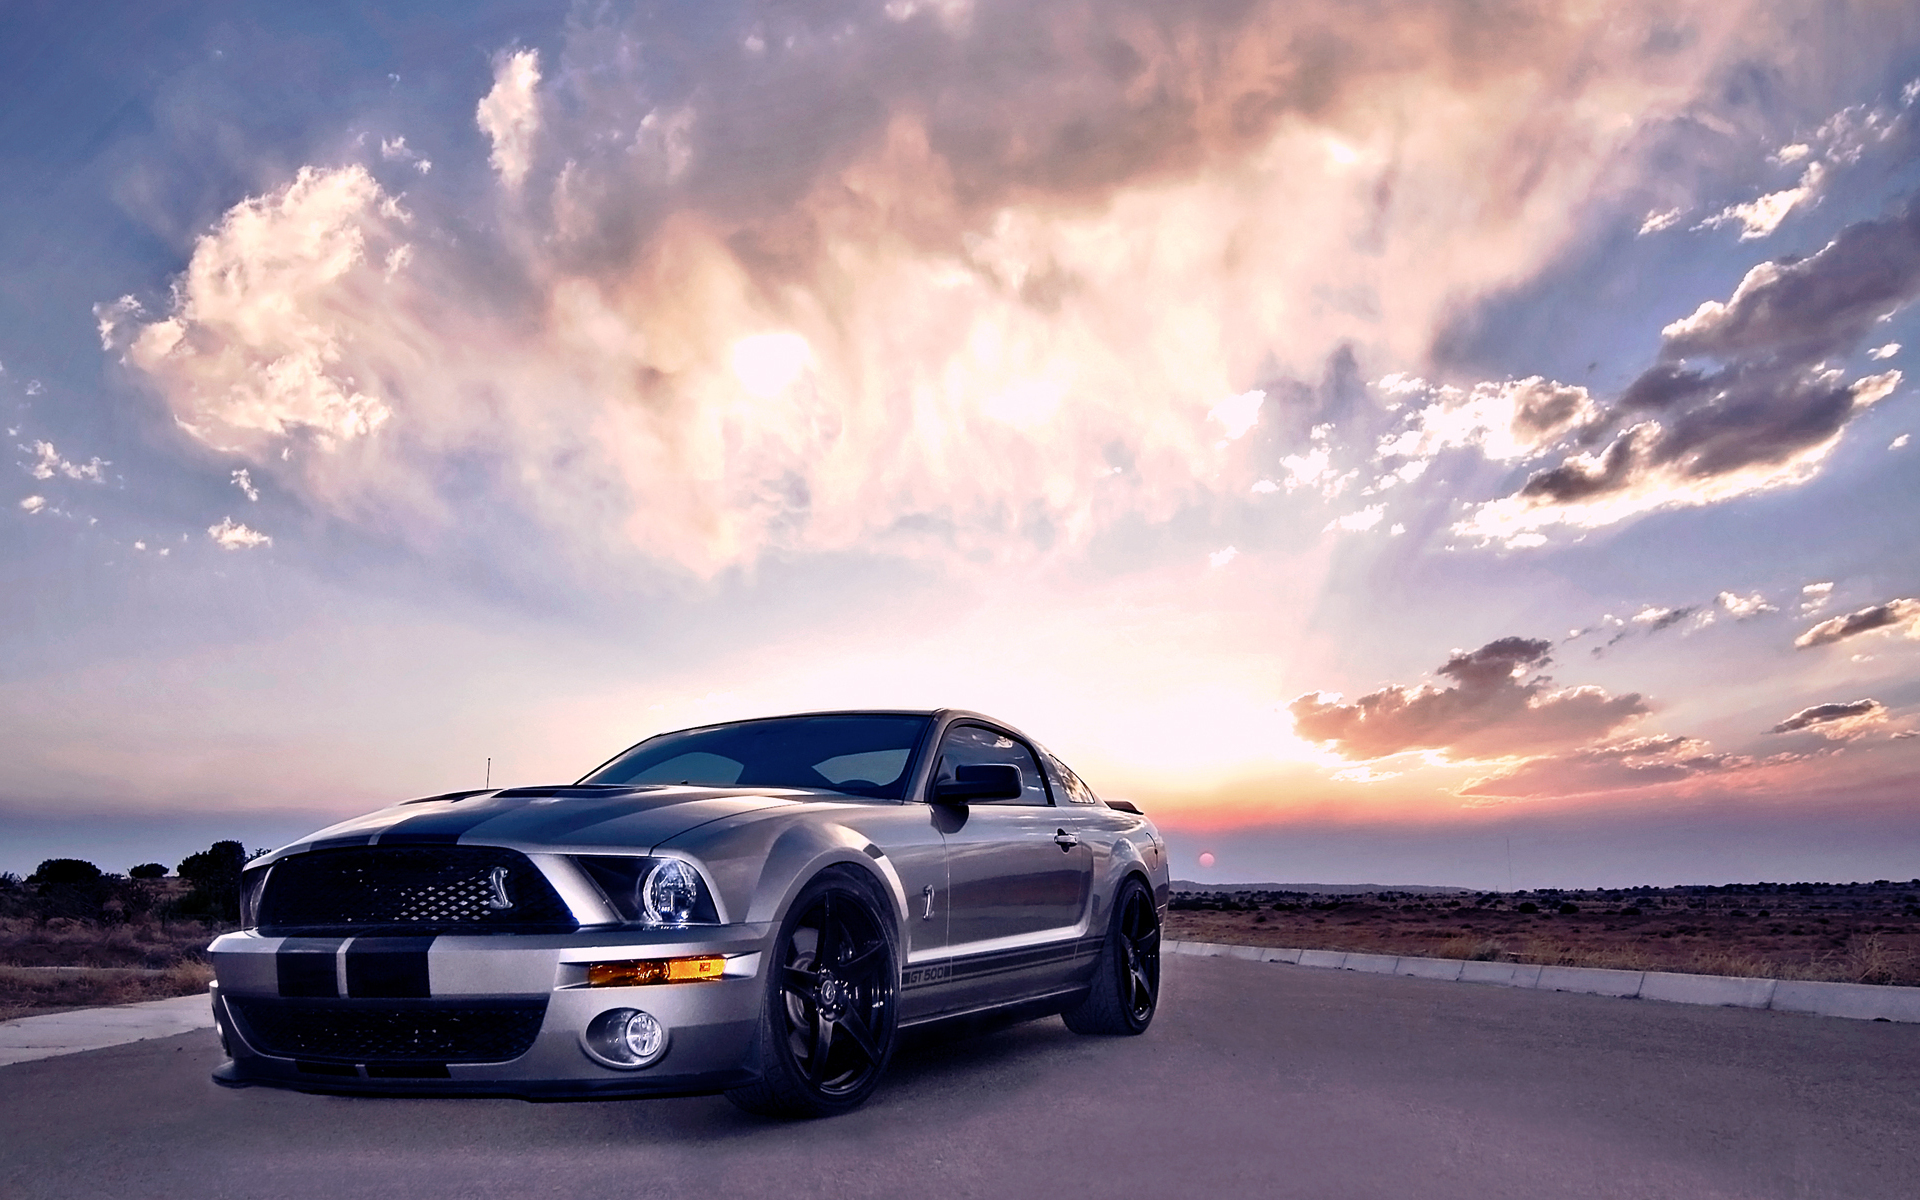 2014 ford mustang shelby gt500 wallpaper